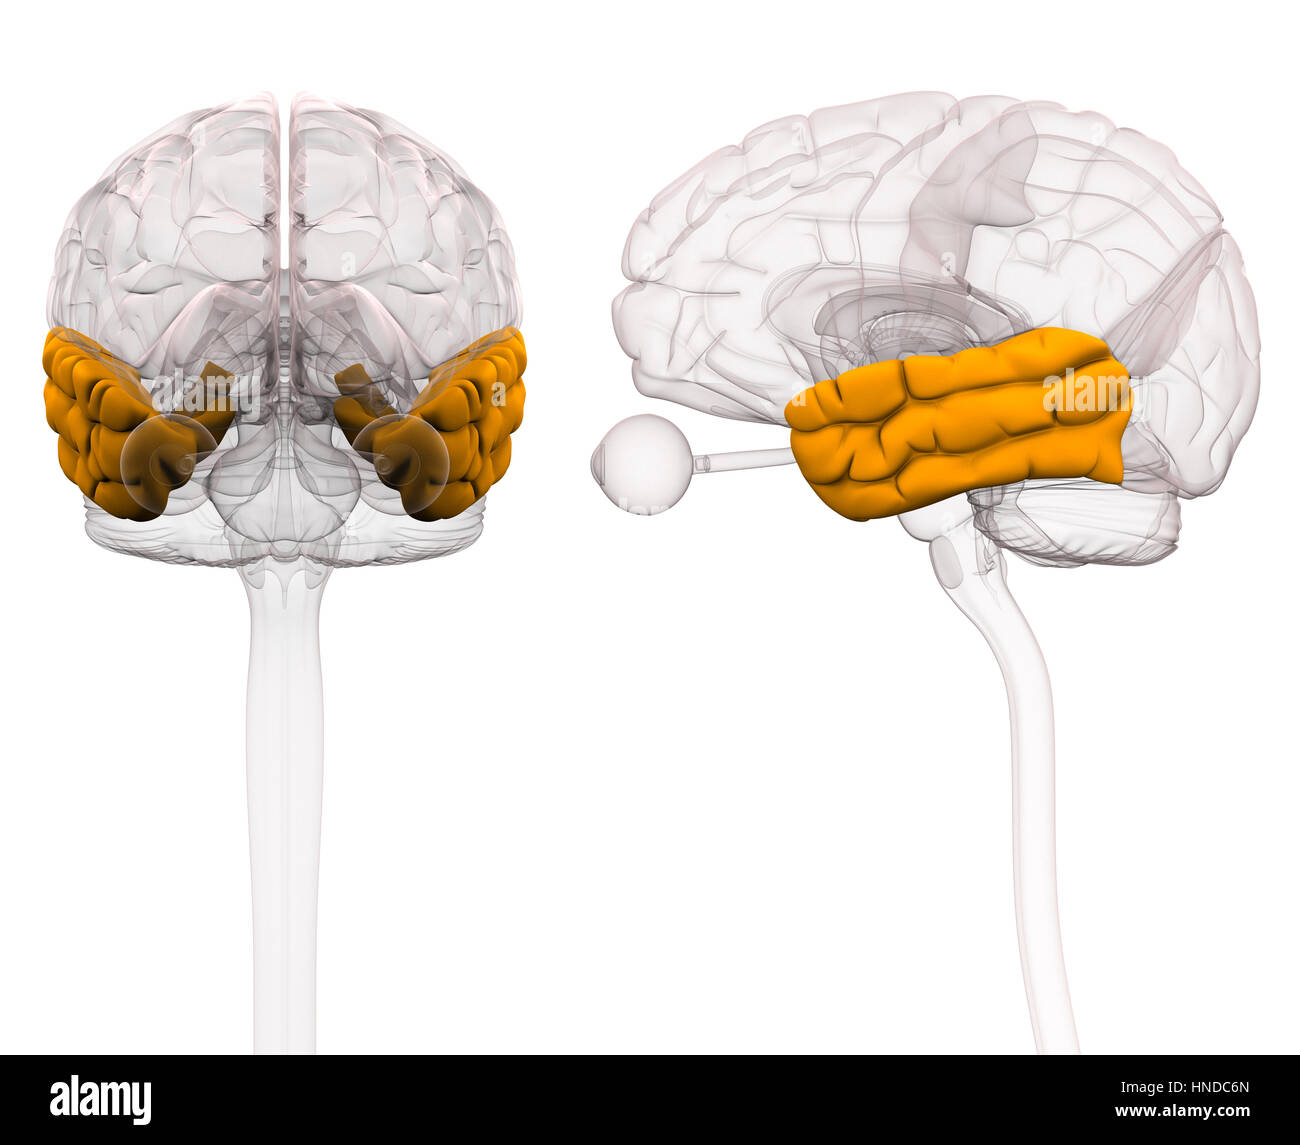 Temporal Lobe Brain Anatomy - 3d illustration Stock Photo: 133675325 ...